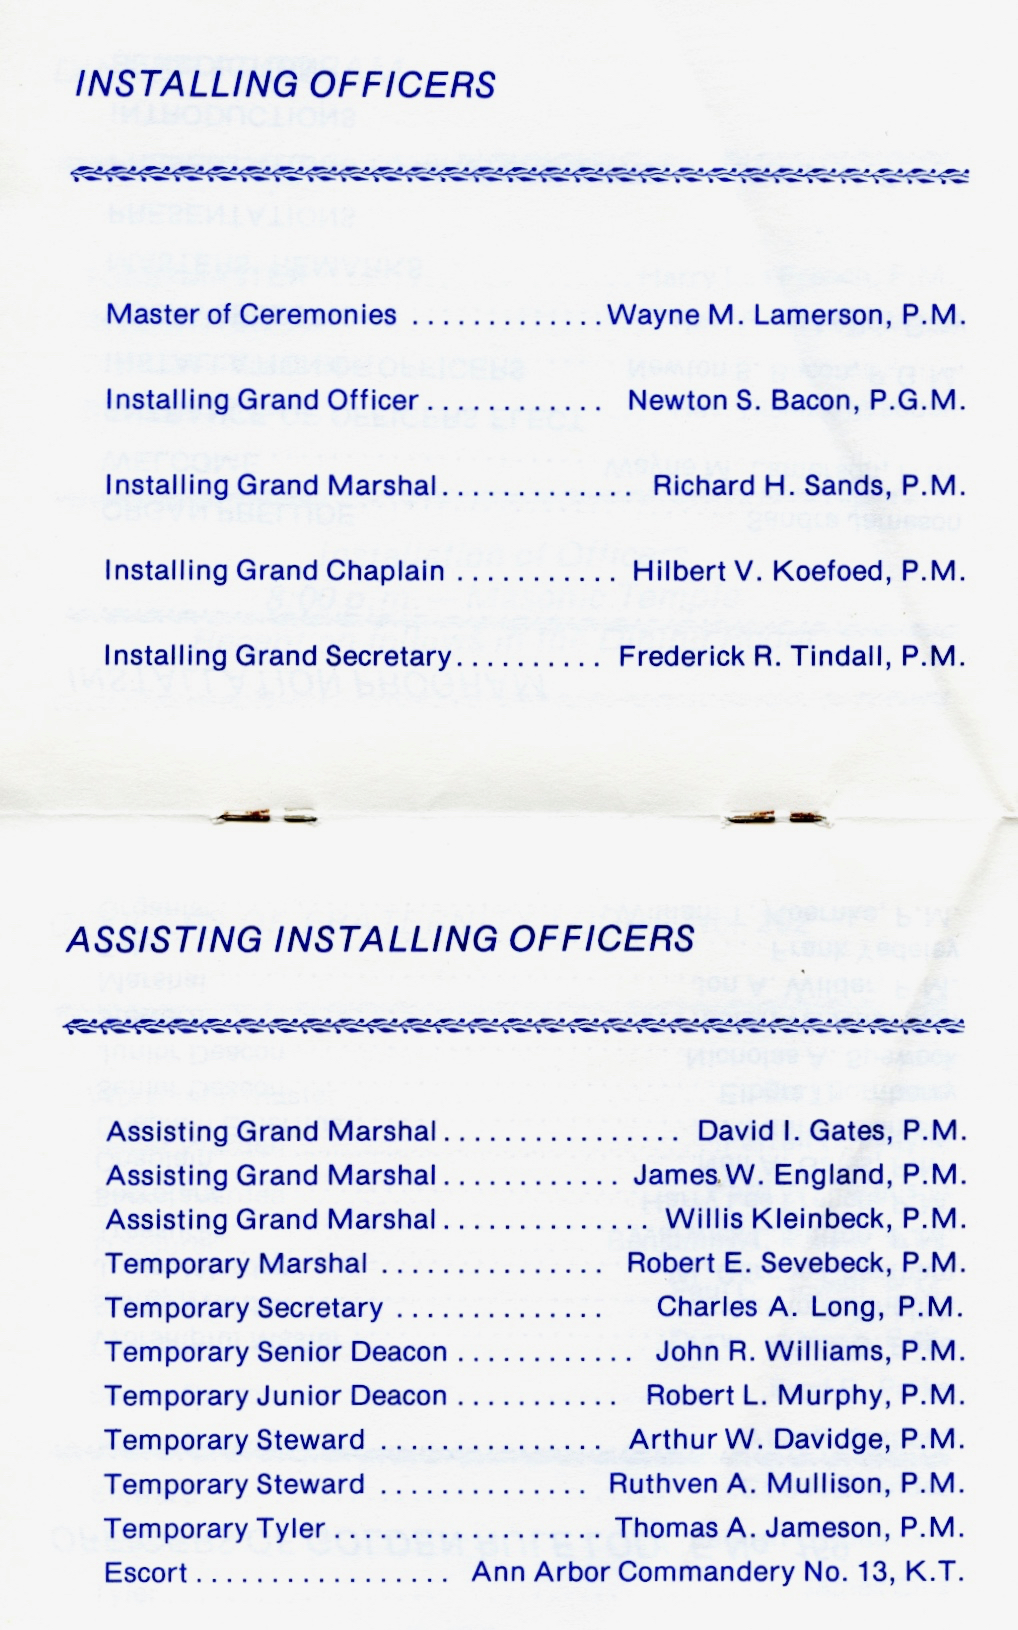 1978 Installation Page 5 & 6